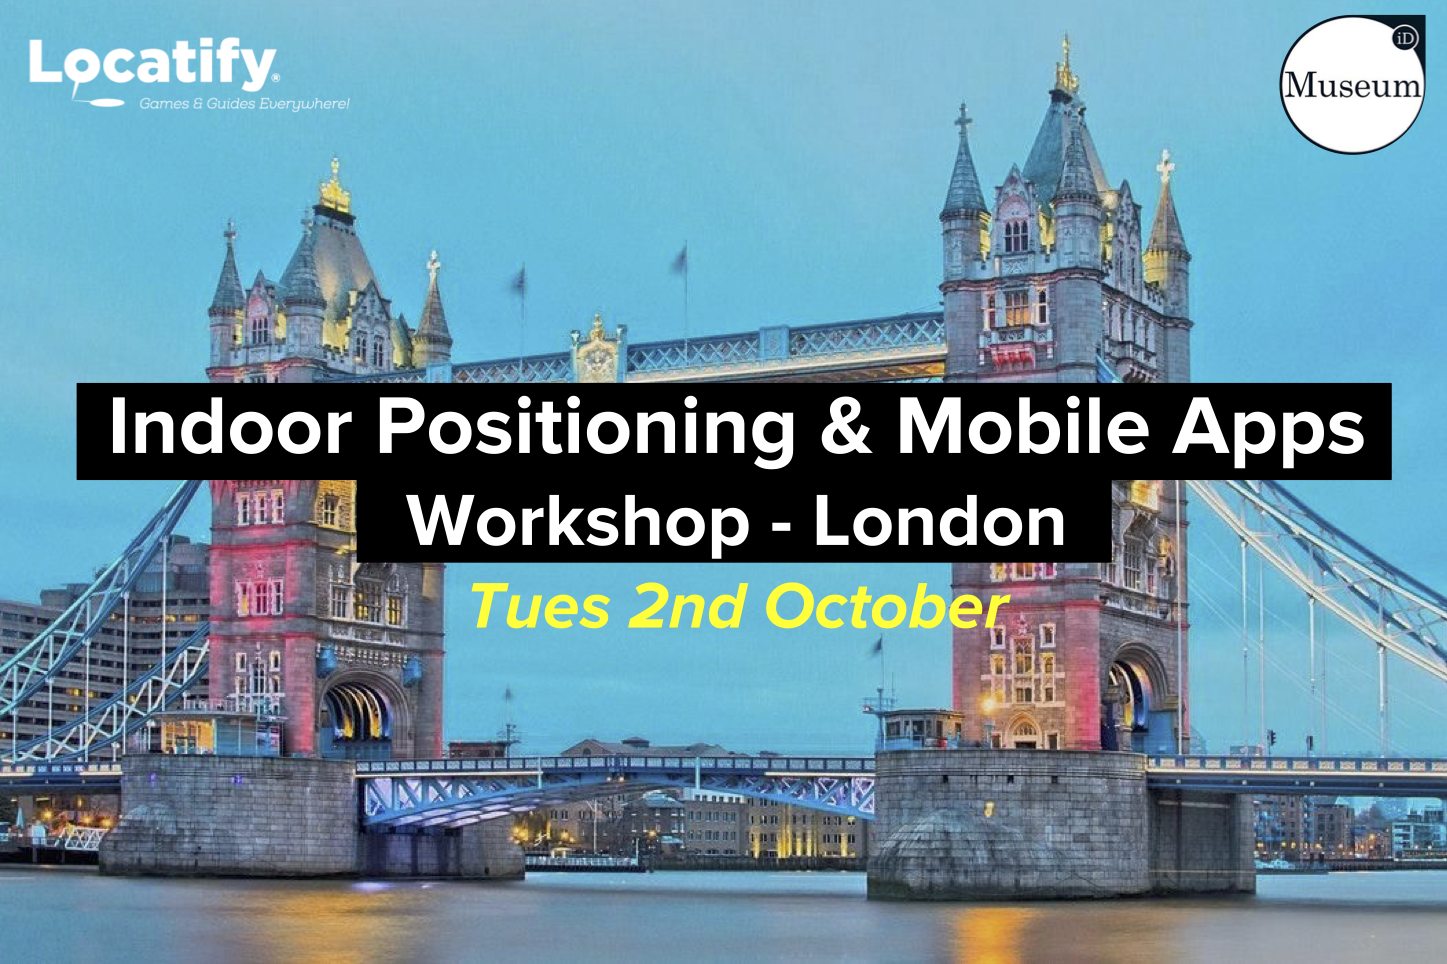 Museum ideas workshop Locatify Indoor positioning (2)